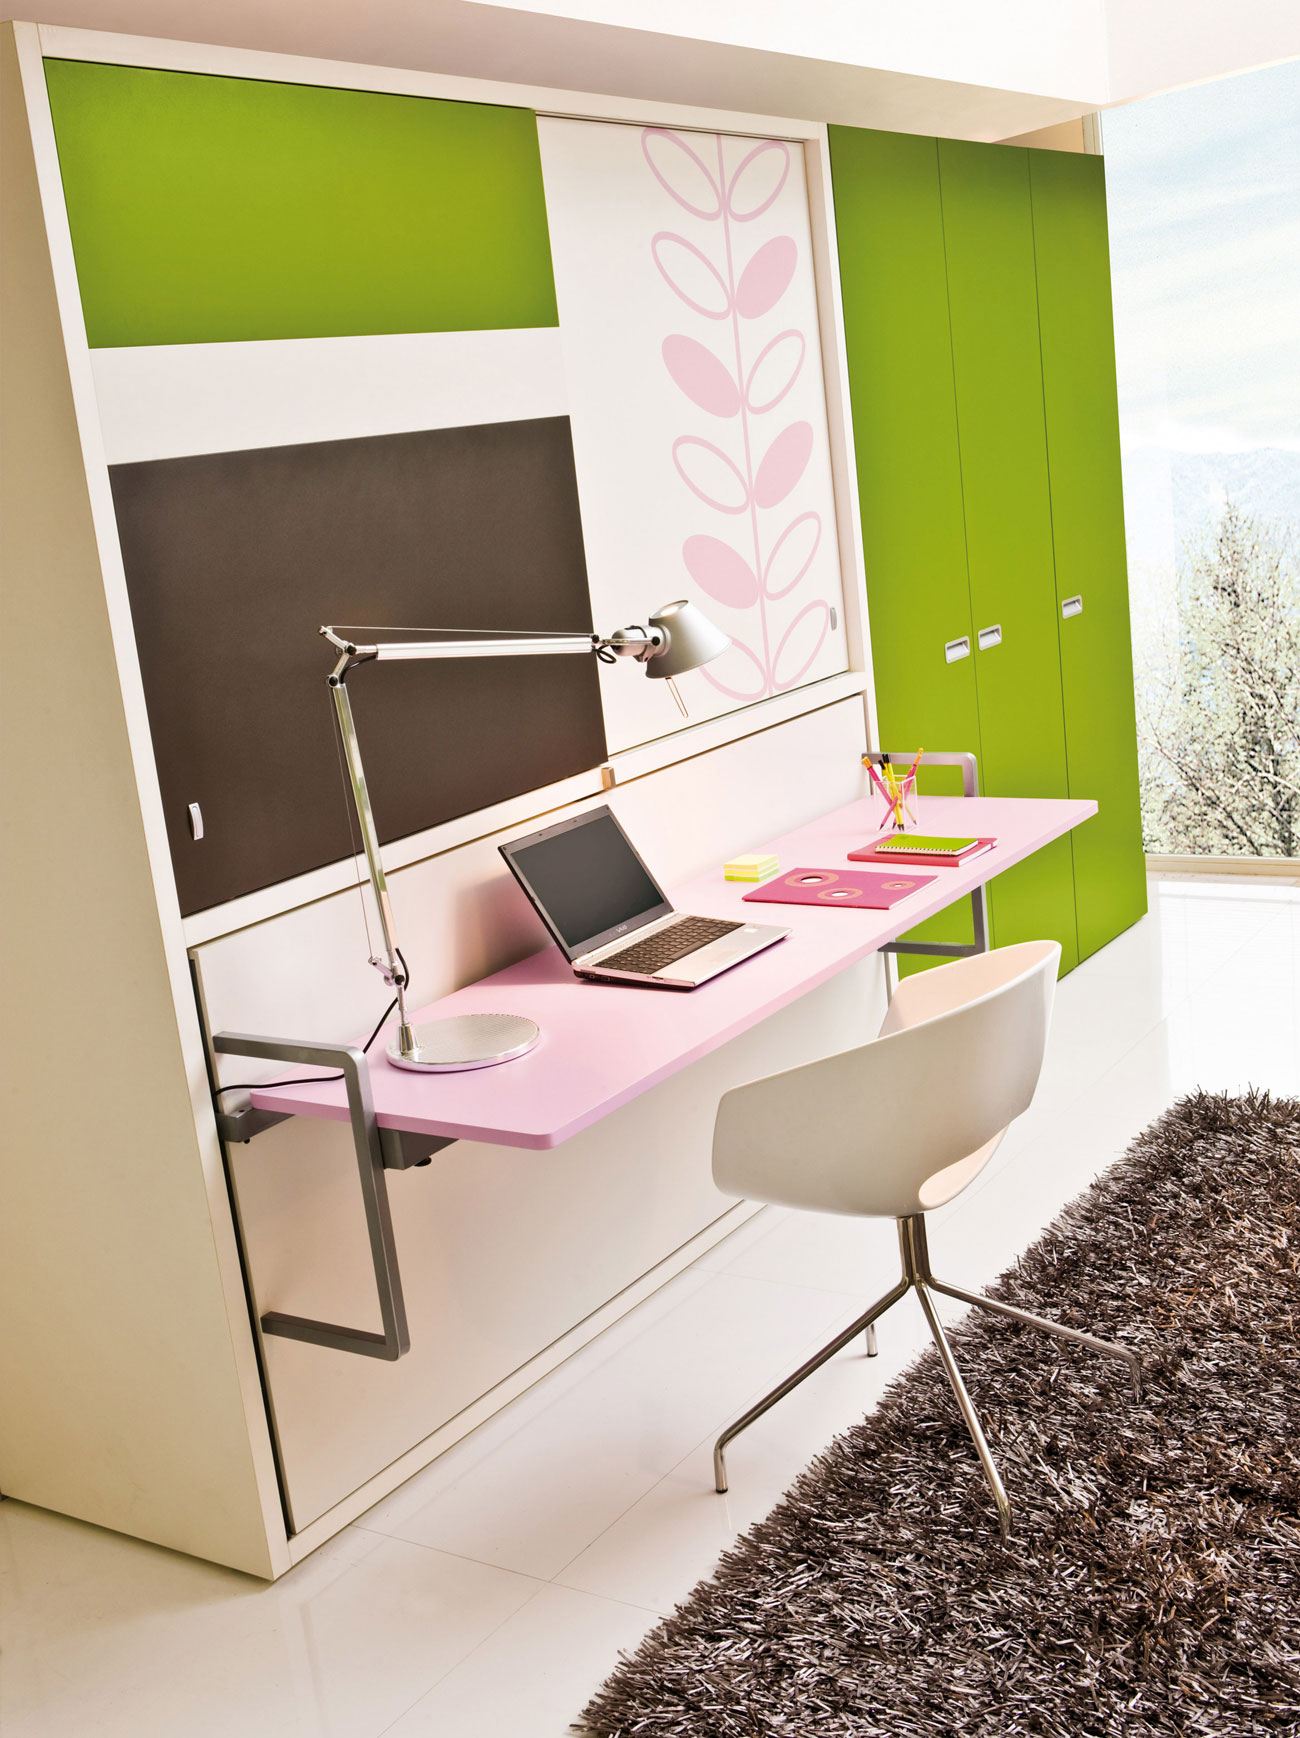 Poppi Board wall bed convertible system by Clei